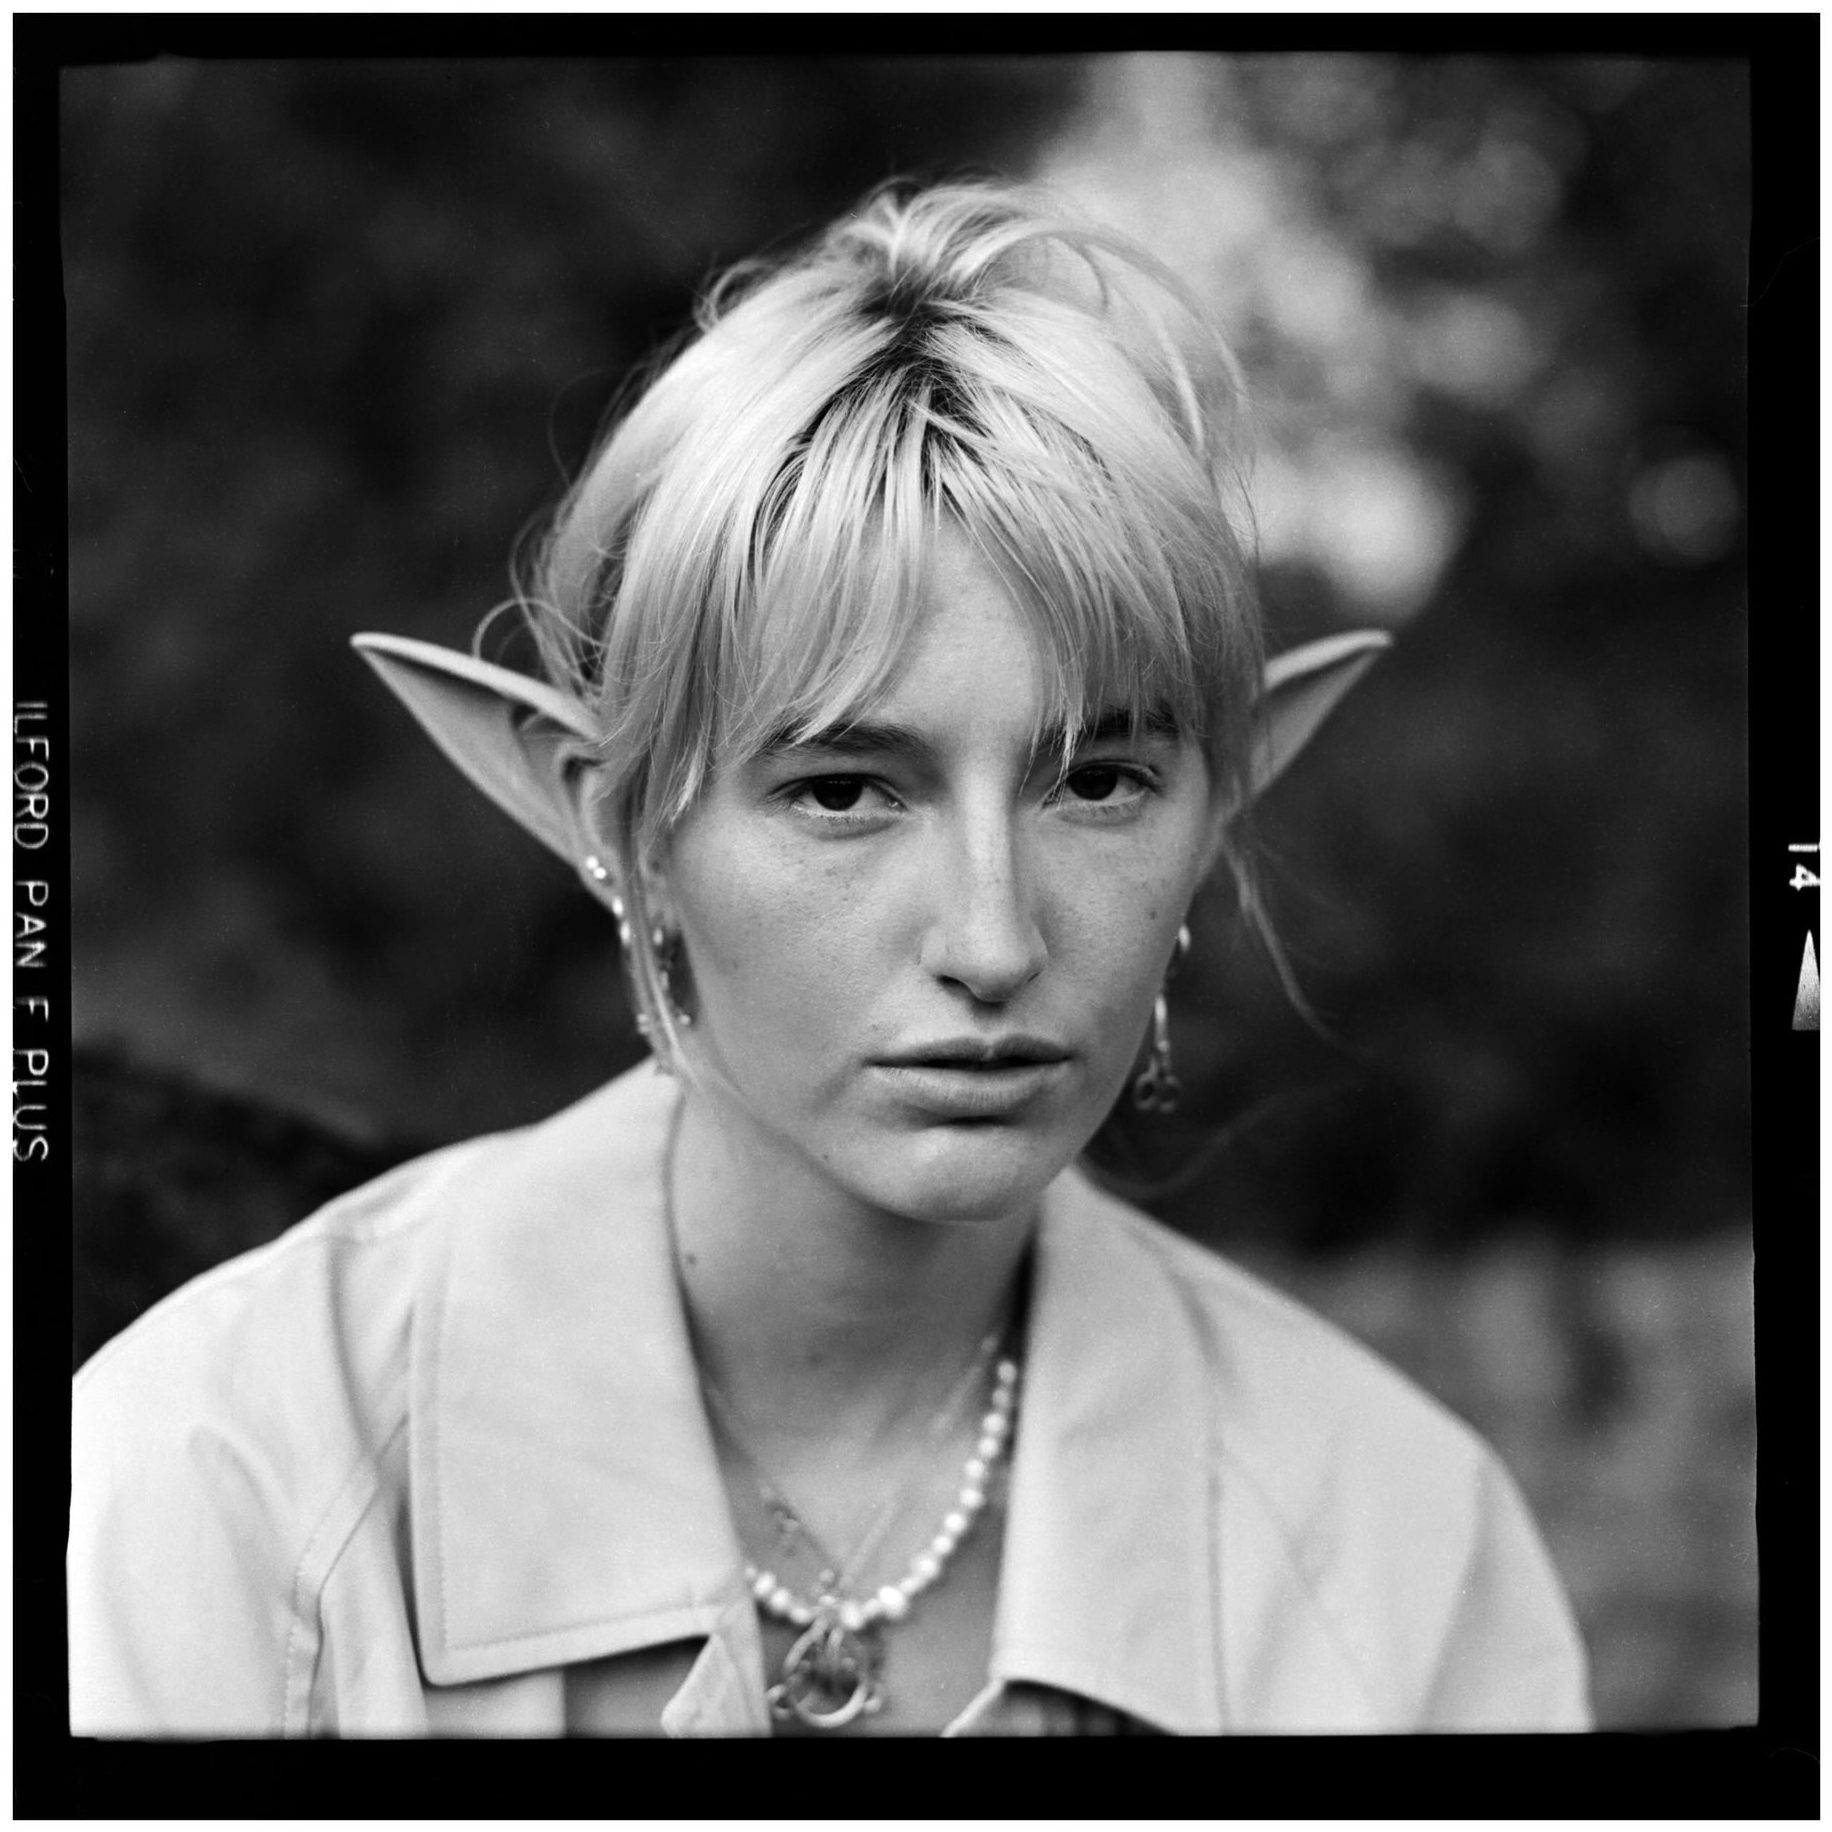 """@CMFleming70 · 41m Replying to @ILFORDPhoto This is an """"elfie""""... . . . Hahahahahahahahahahahahahahahahahahaahahahahah ahhh elfie...."""